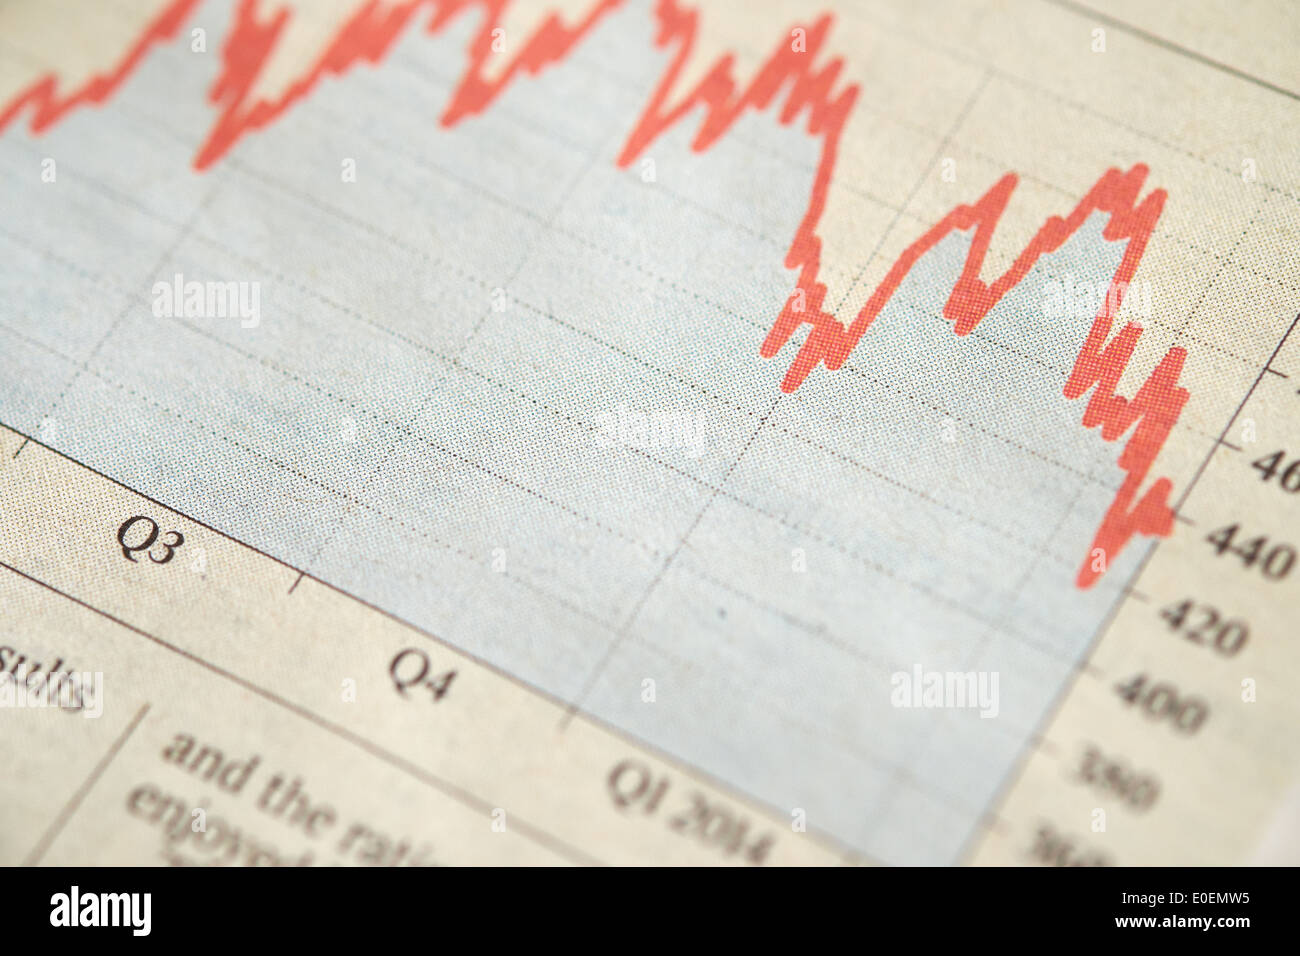 A photo of a printed Financial Data Graph showing performance of stocks and shares. - Stock Image